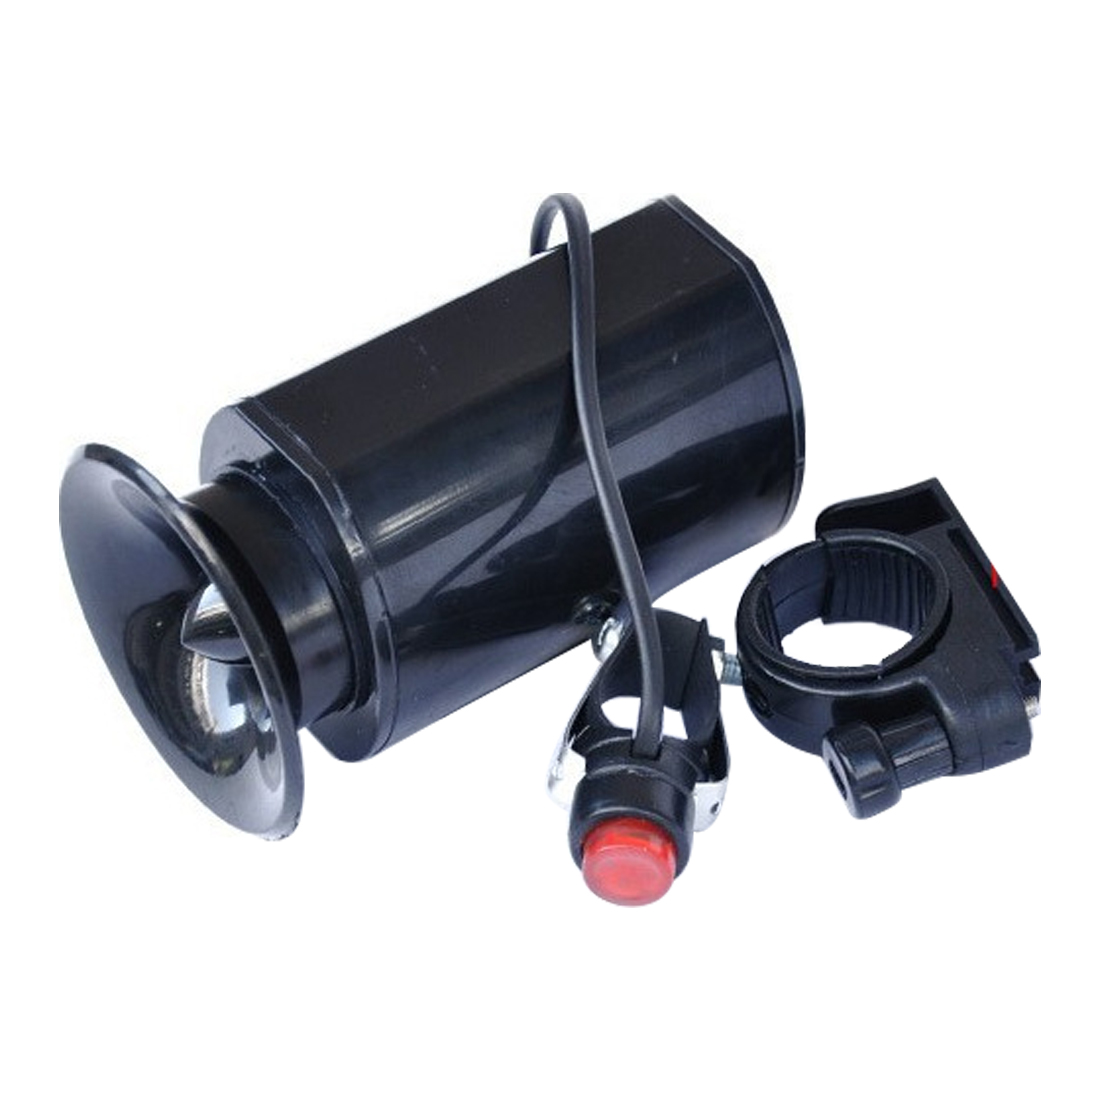 New Arrival 6 Sounds Super Loud Electronic Bicycle Bell Bike Horn Siren Ring Alarm Speaker